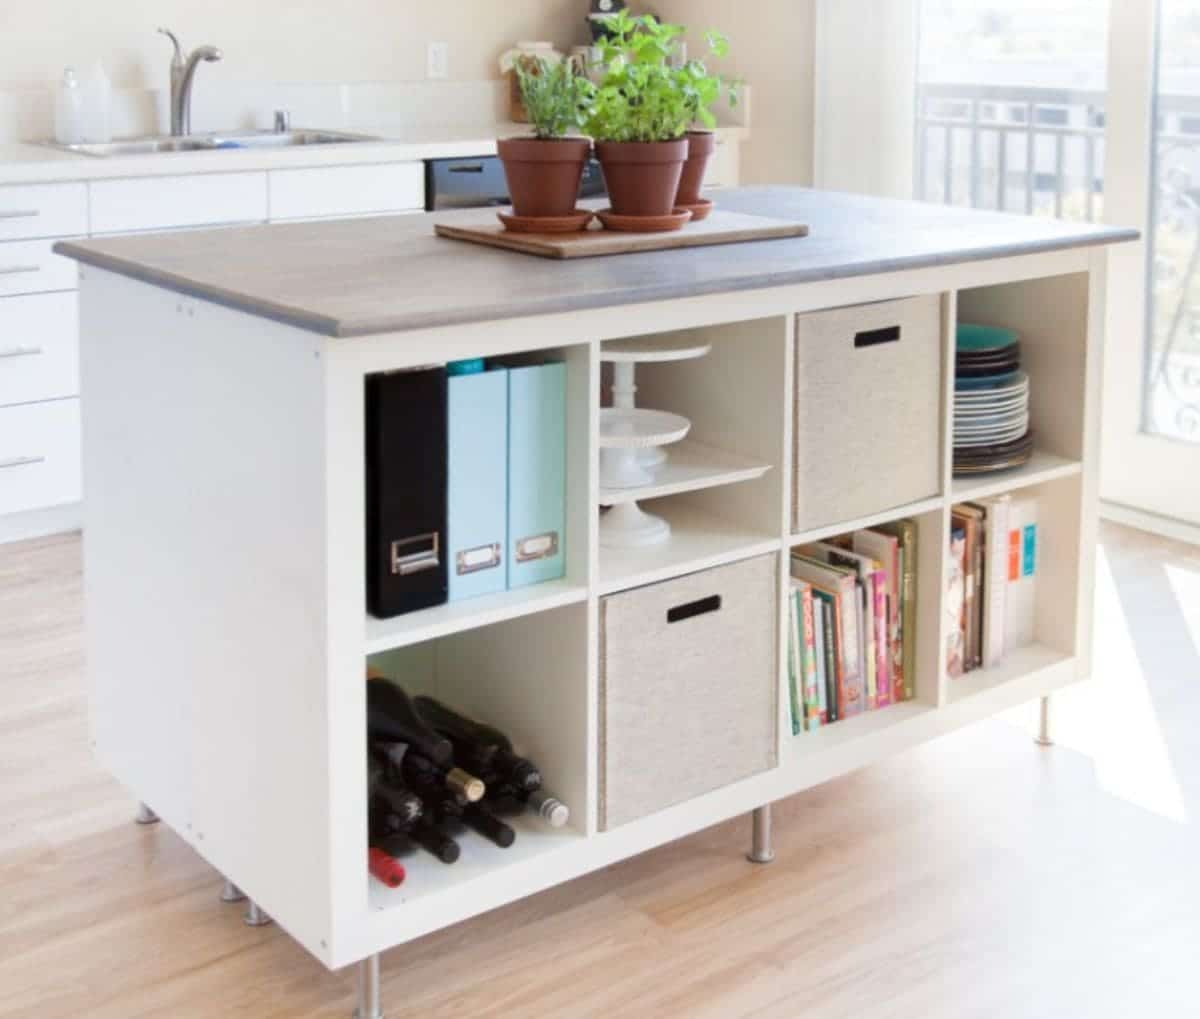 A white IKEA Kallax unit sits on coasters and is filled with wine bottles, folders, plates and baking trays. On top are some potted plants